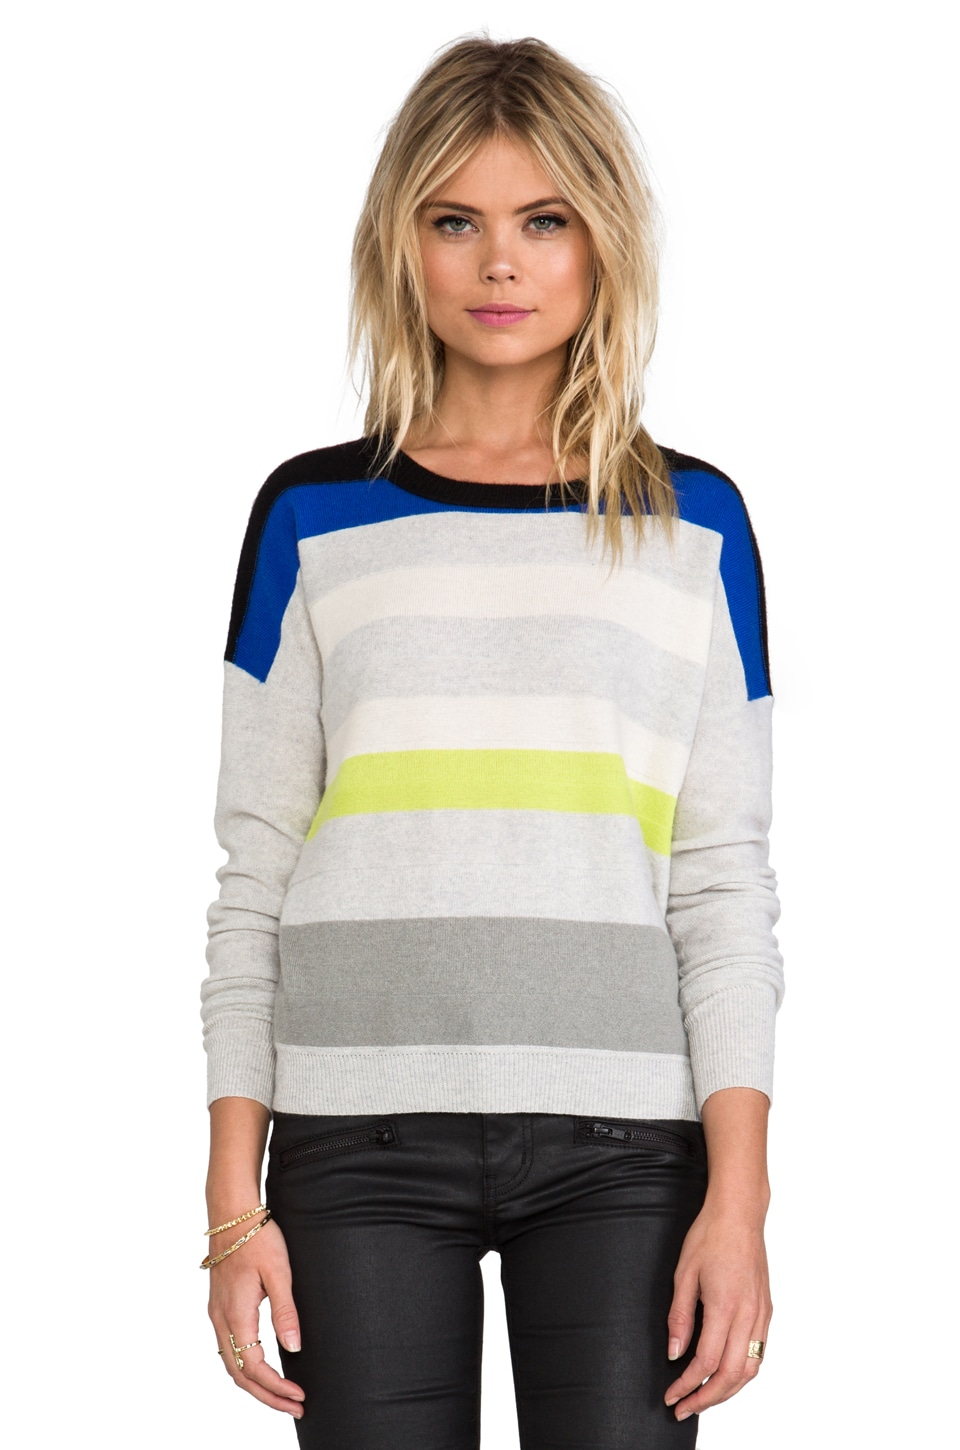 Diane von Furstenberg Shell Sweater in Black/Blue